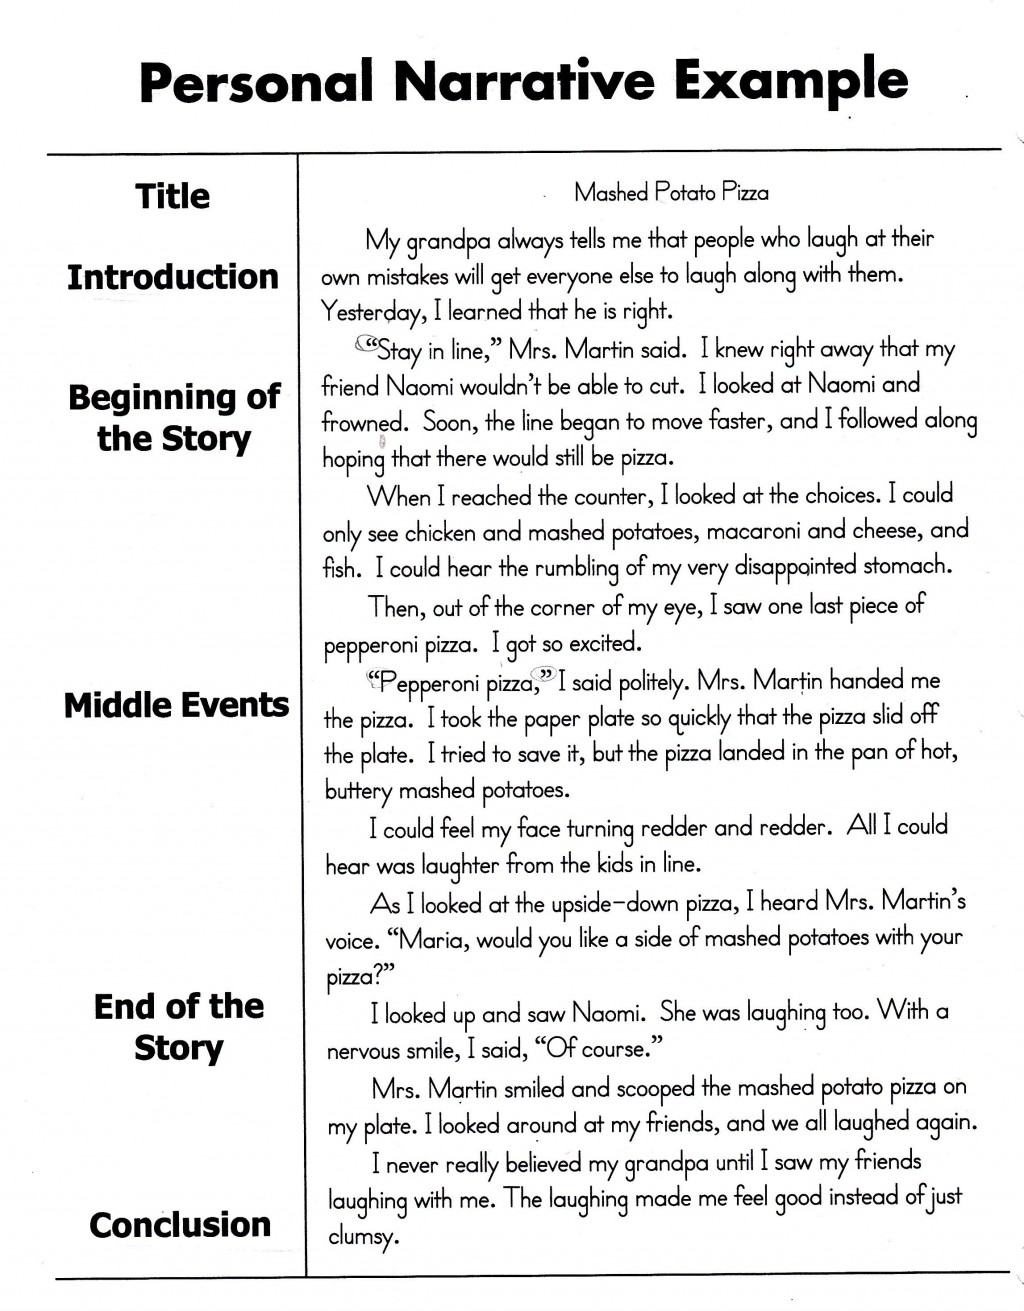 002 Personal Narrative Essay Rare Examples Sample High School Free Large